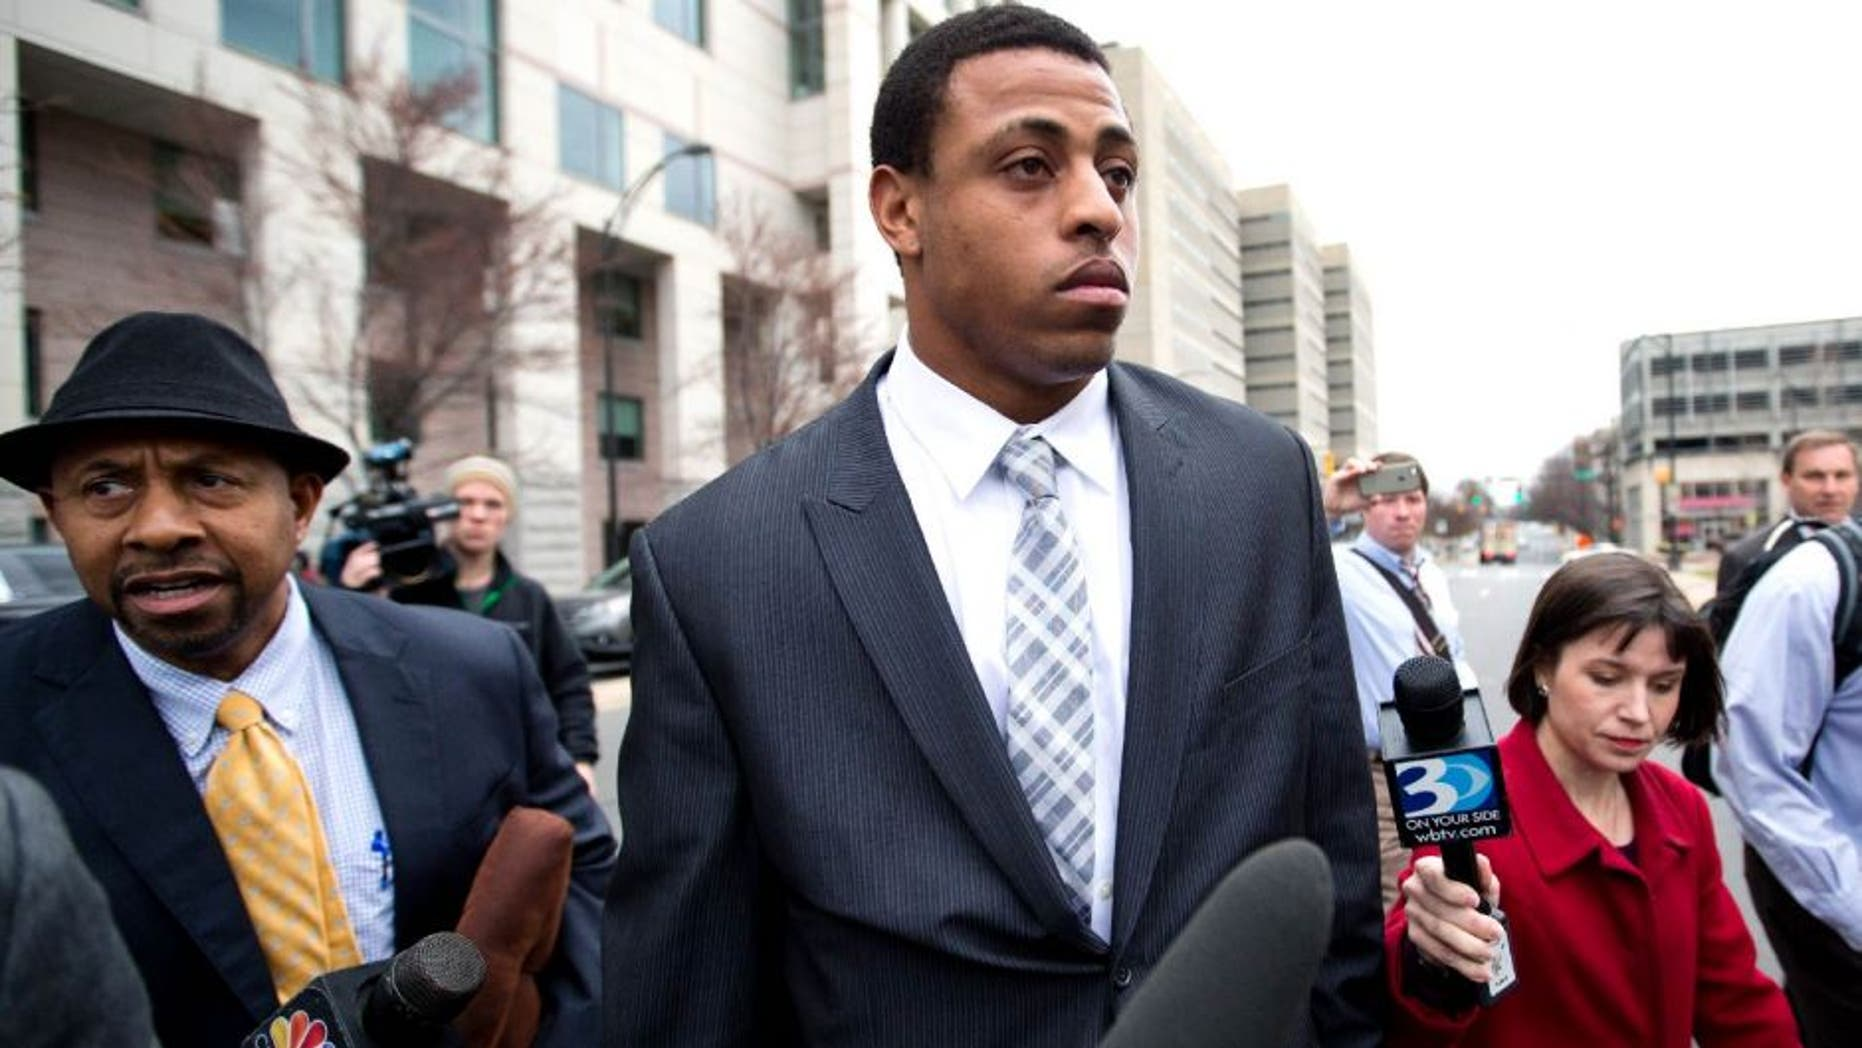 Carolina Panthers' Greg Hardy leaves the Mecklenburg County Courthouse after his domestic violence charges were dismissed in Charlotte, N.C., Monday, Feb. 9, 2015. (AP Photo/Chris Keane)